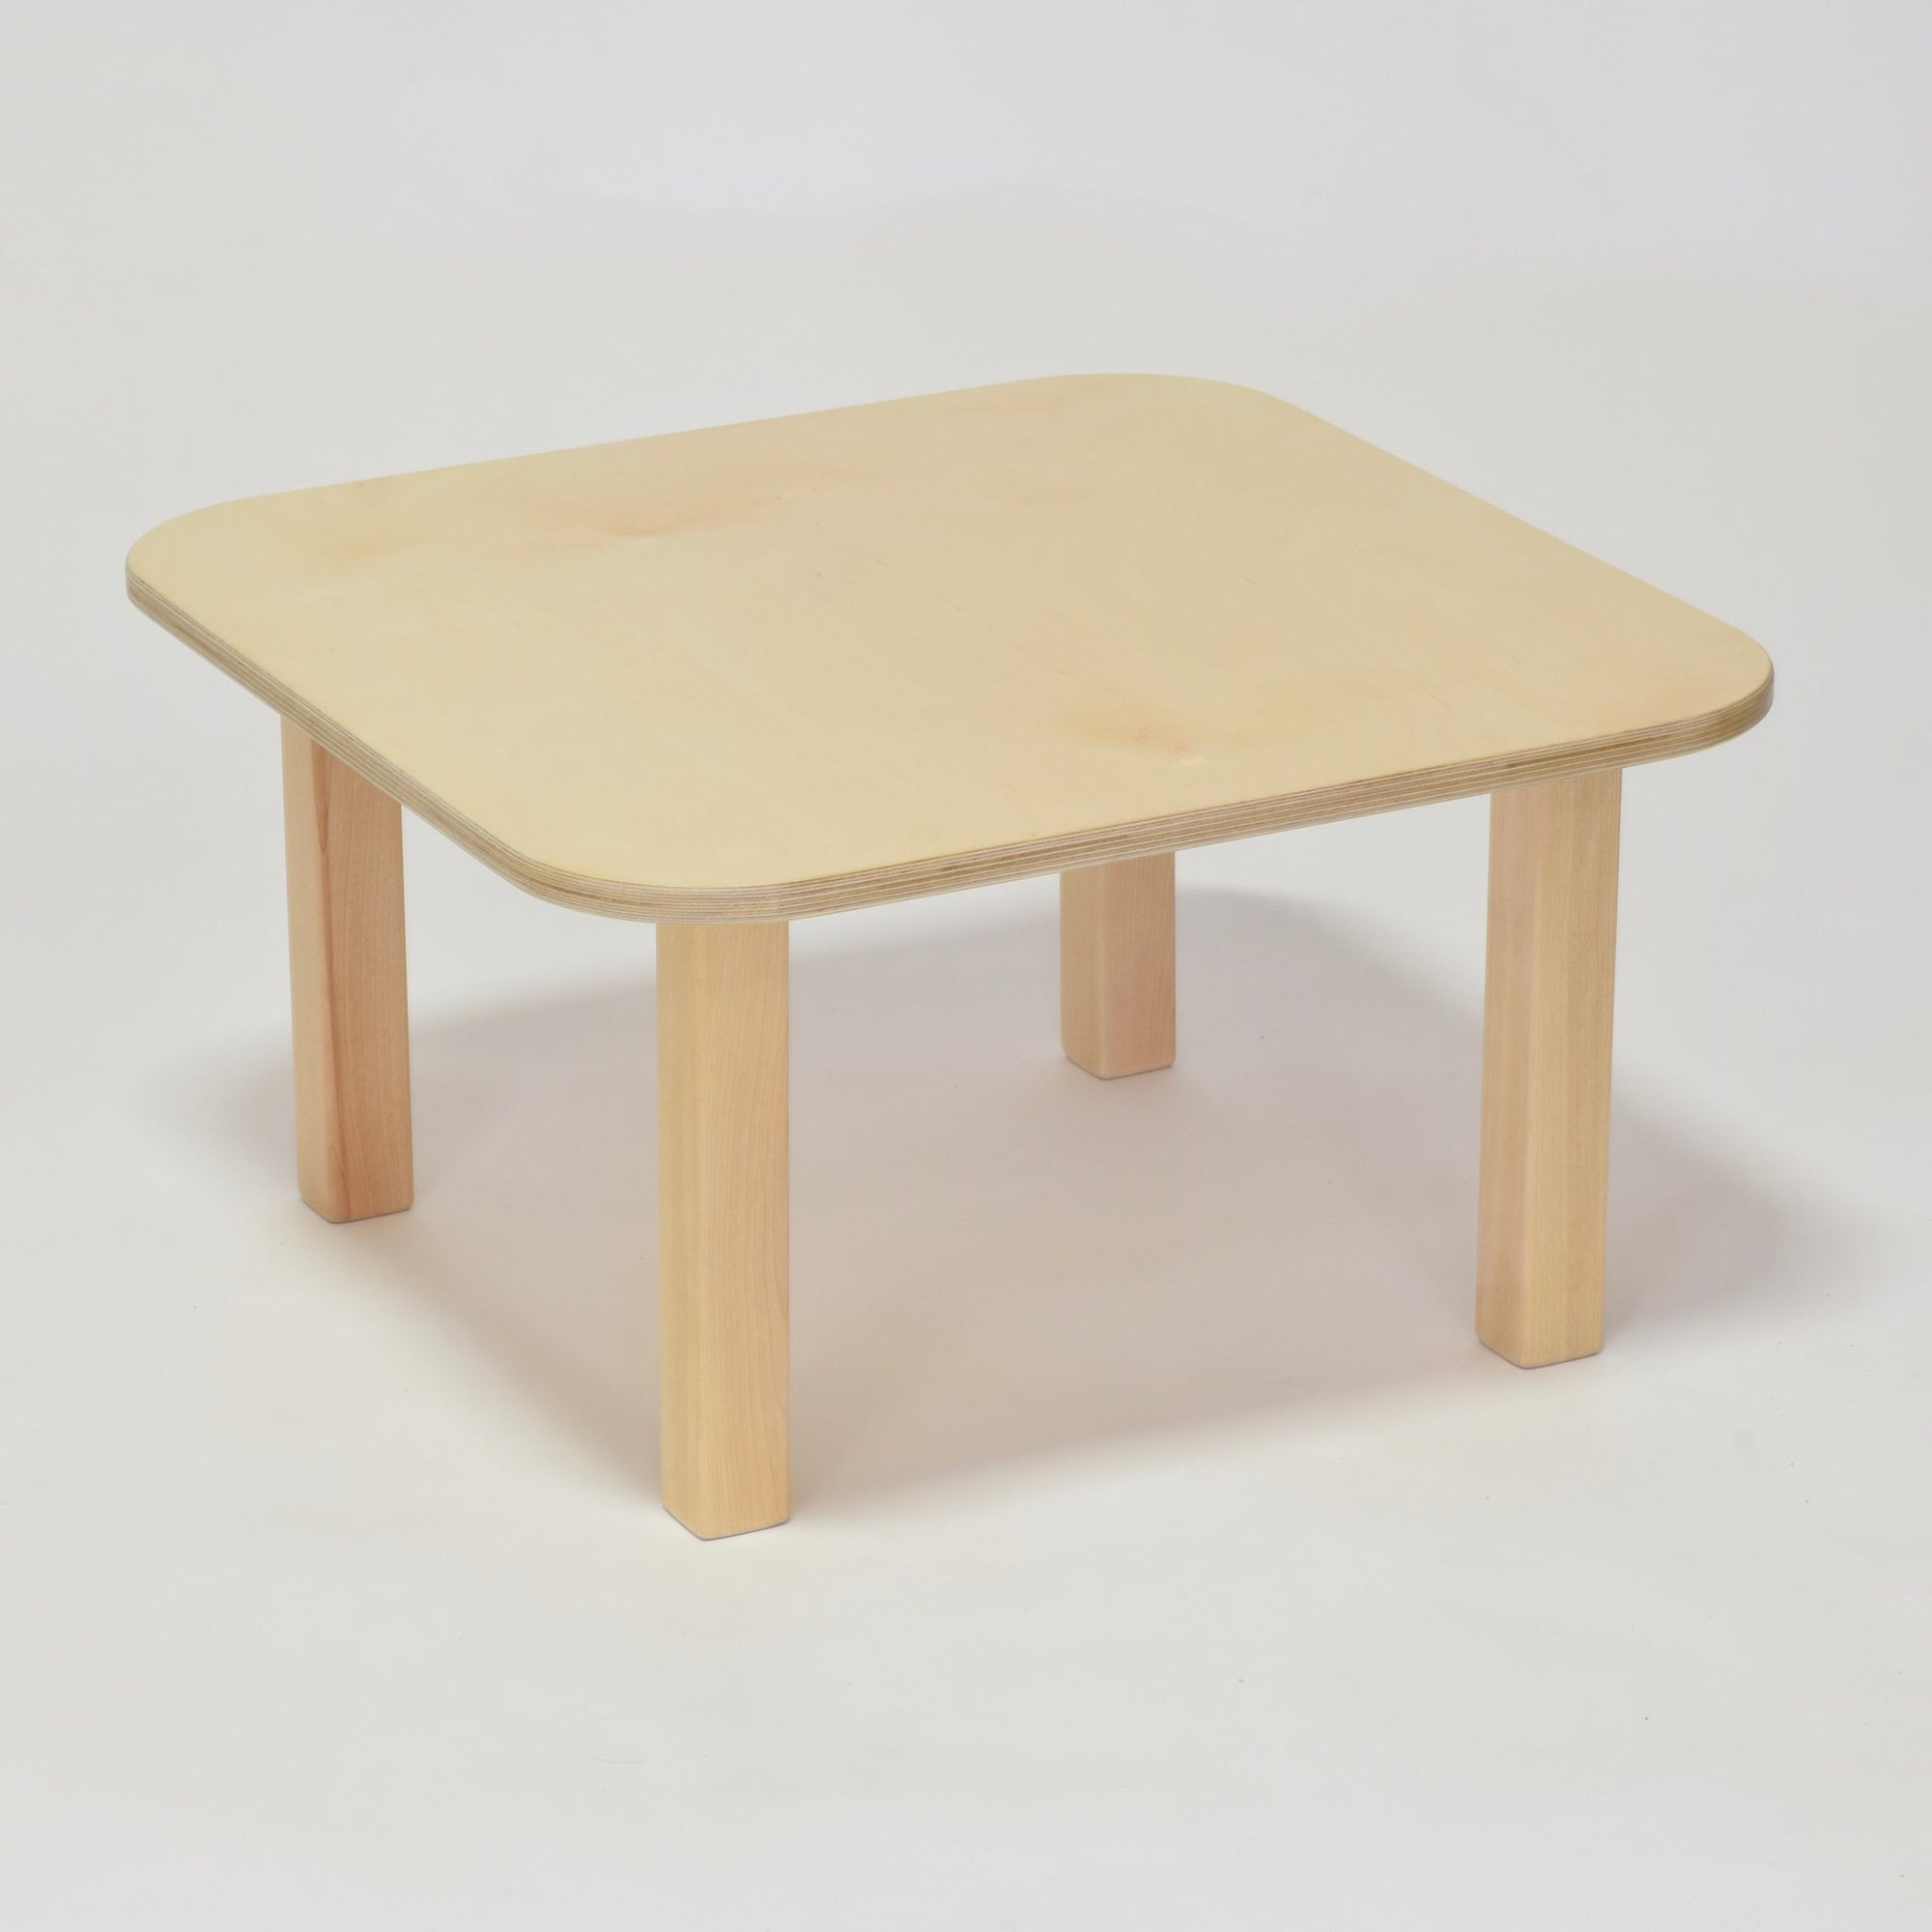 Square Table - RAD Children's Furniture - pikler triangle - montessori toddler furniture - climbing triangle - nursery room